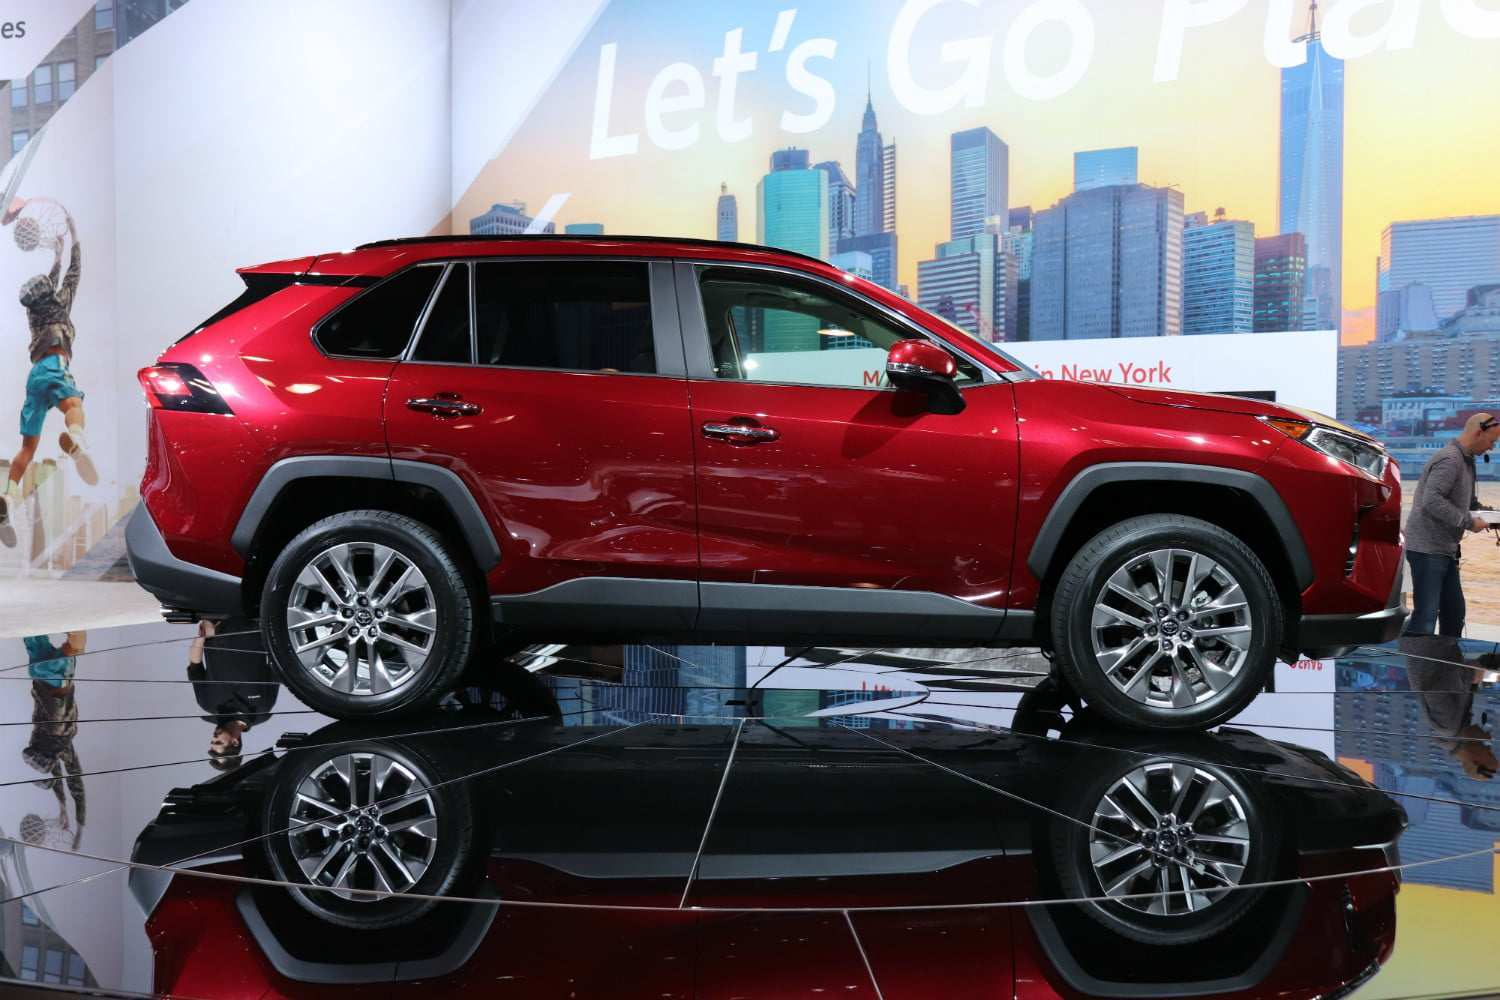 73 Gallery of 2019 Toyota Rav4 Review with 2019 Toyota Rav4